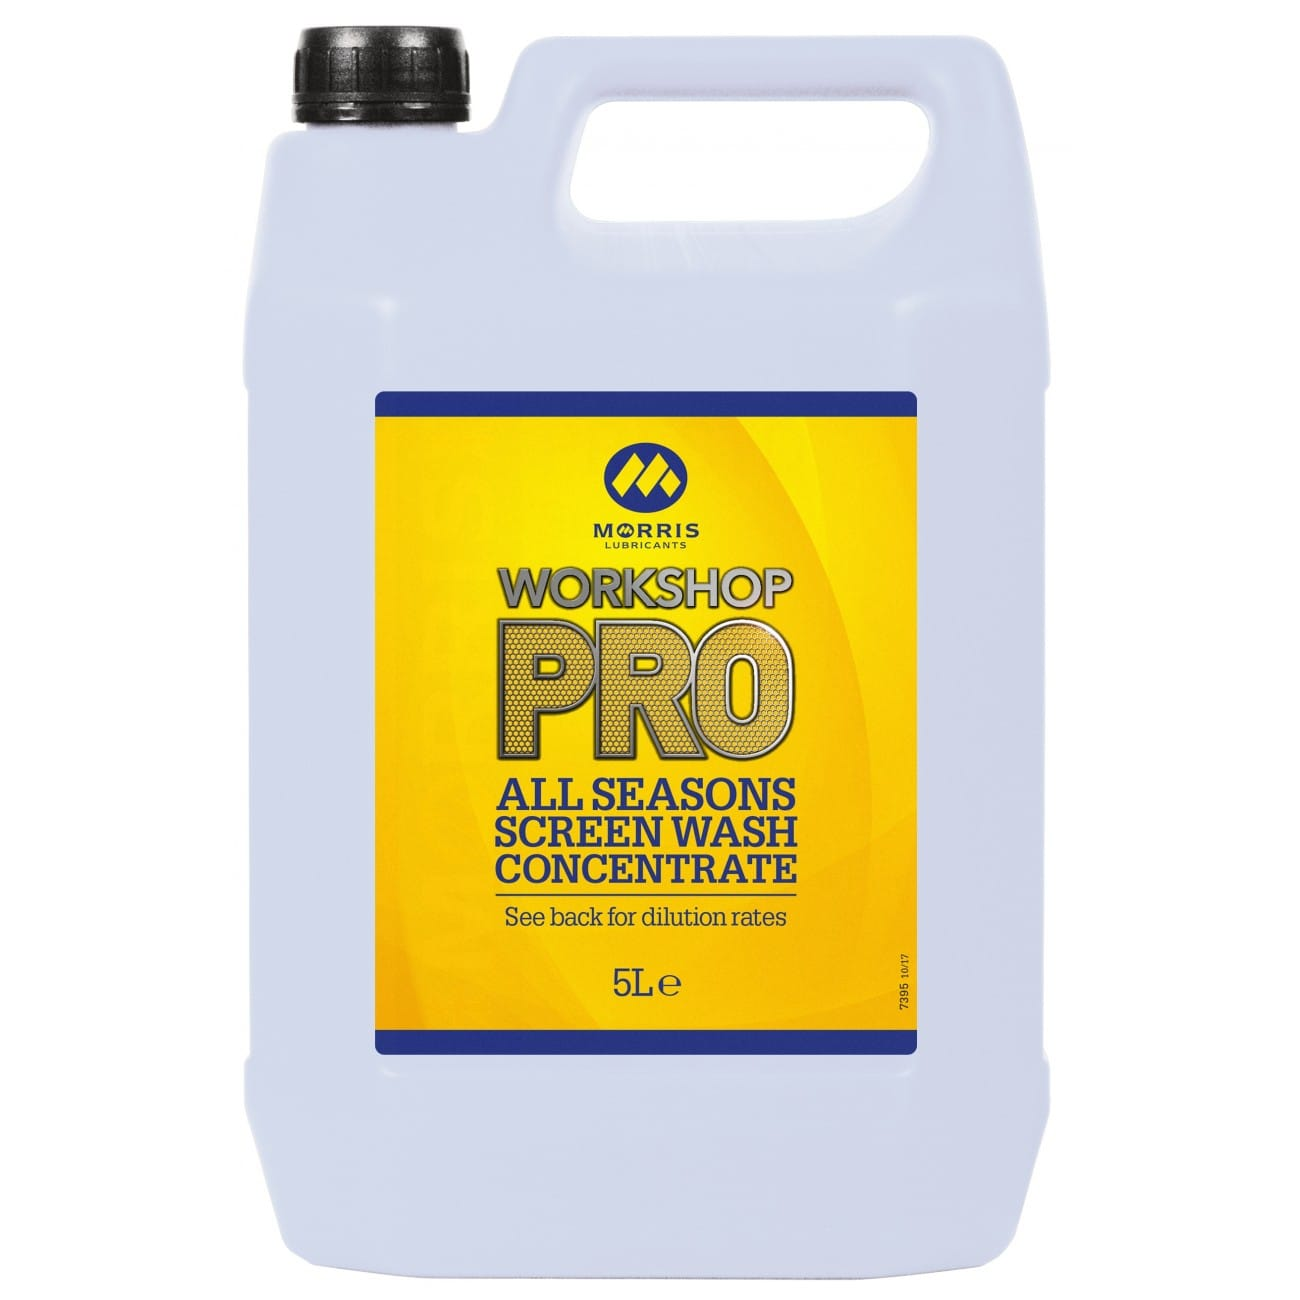 Workshop Pro all seasons Screen Wash